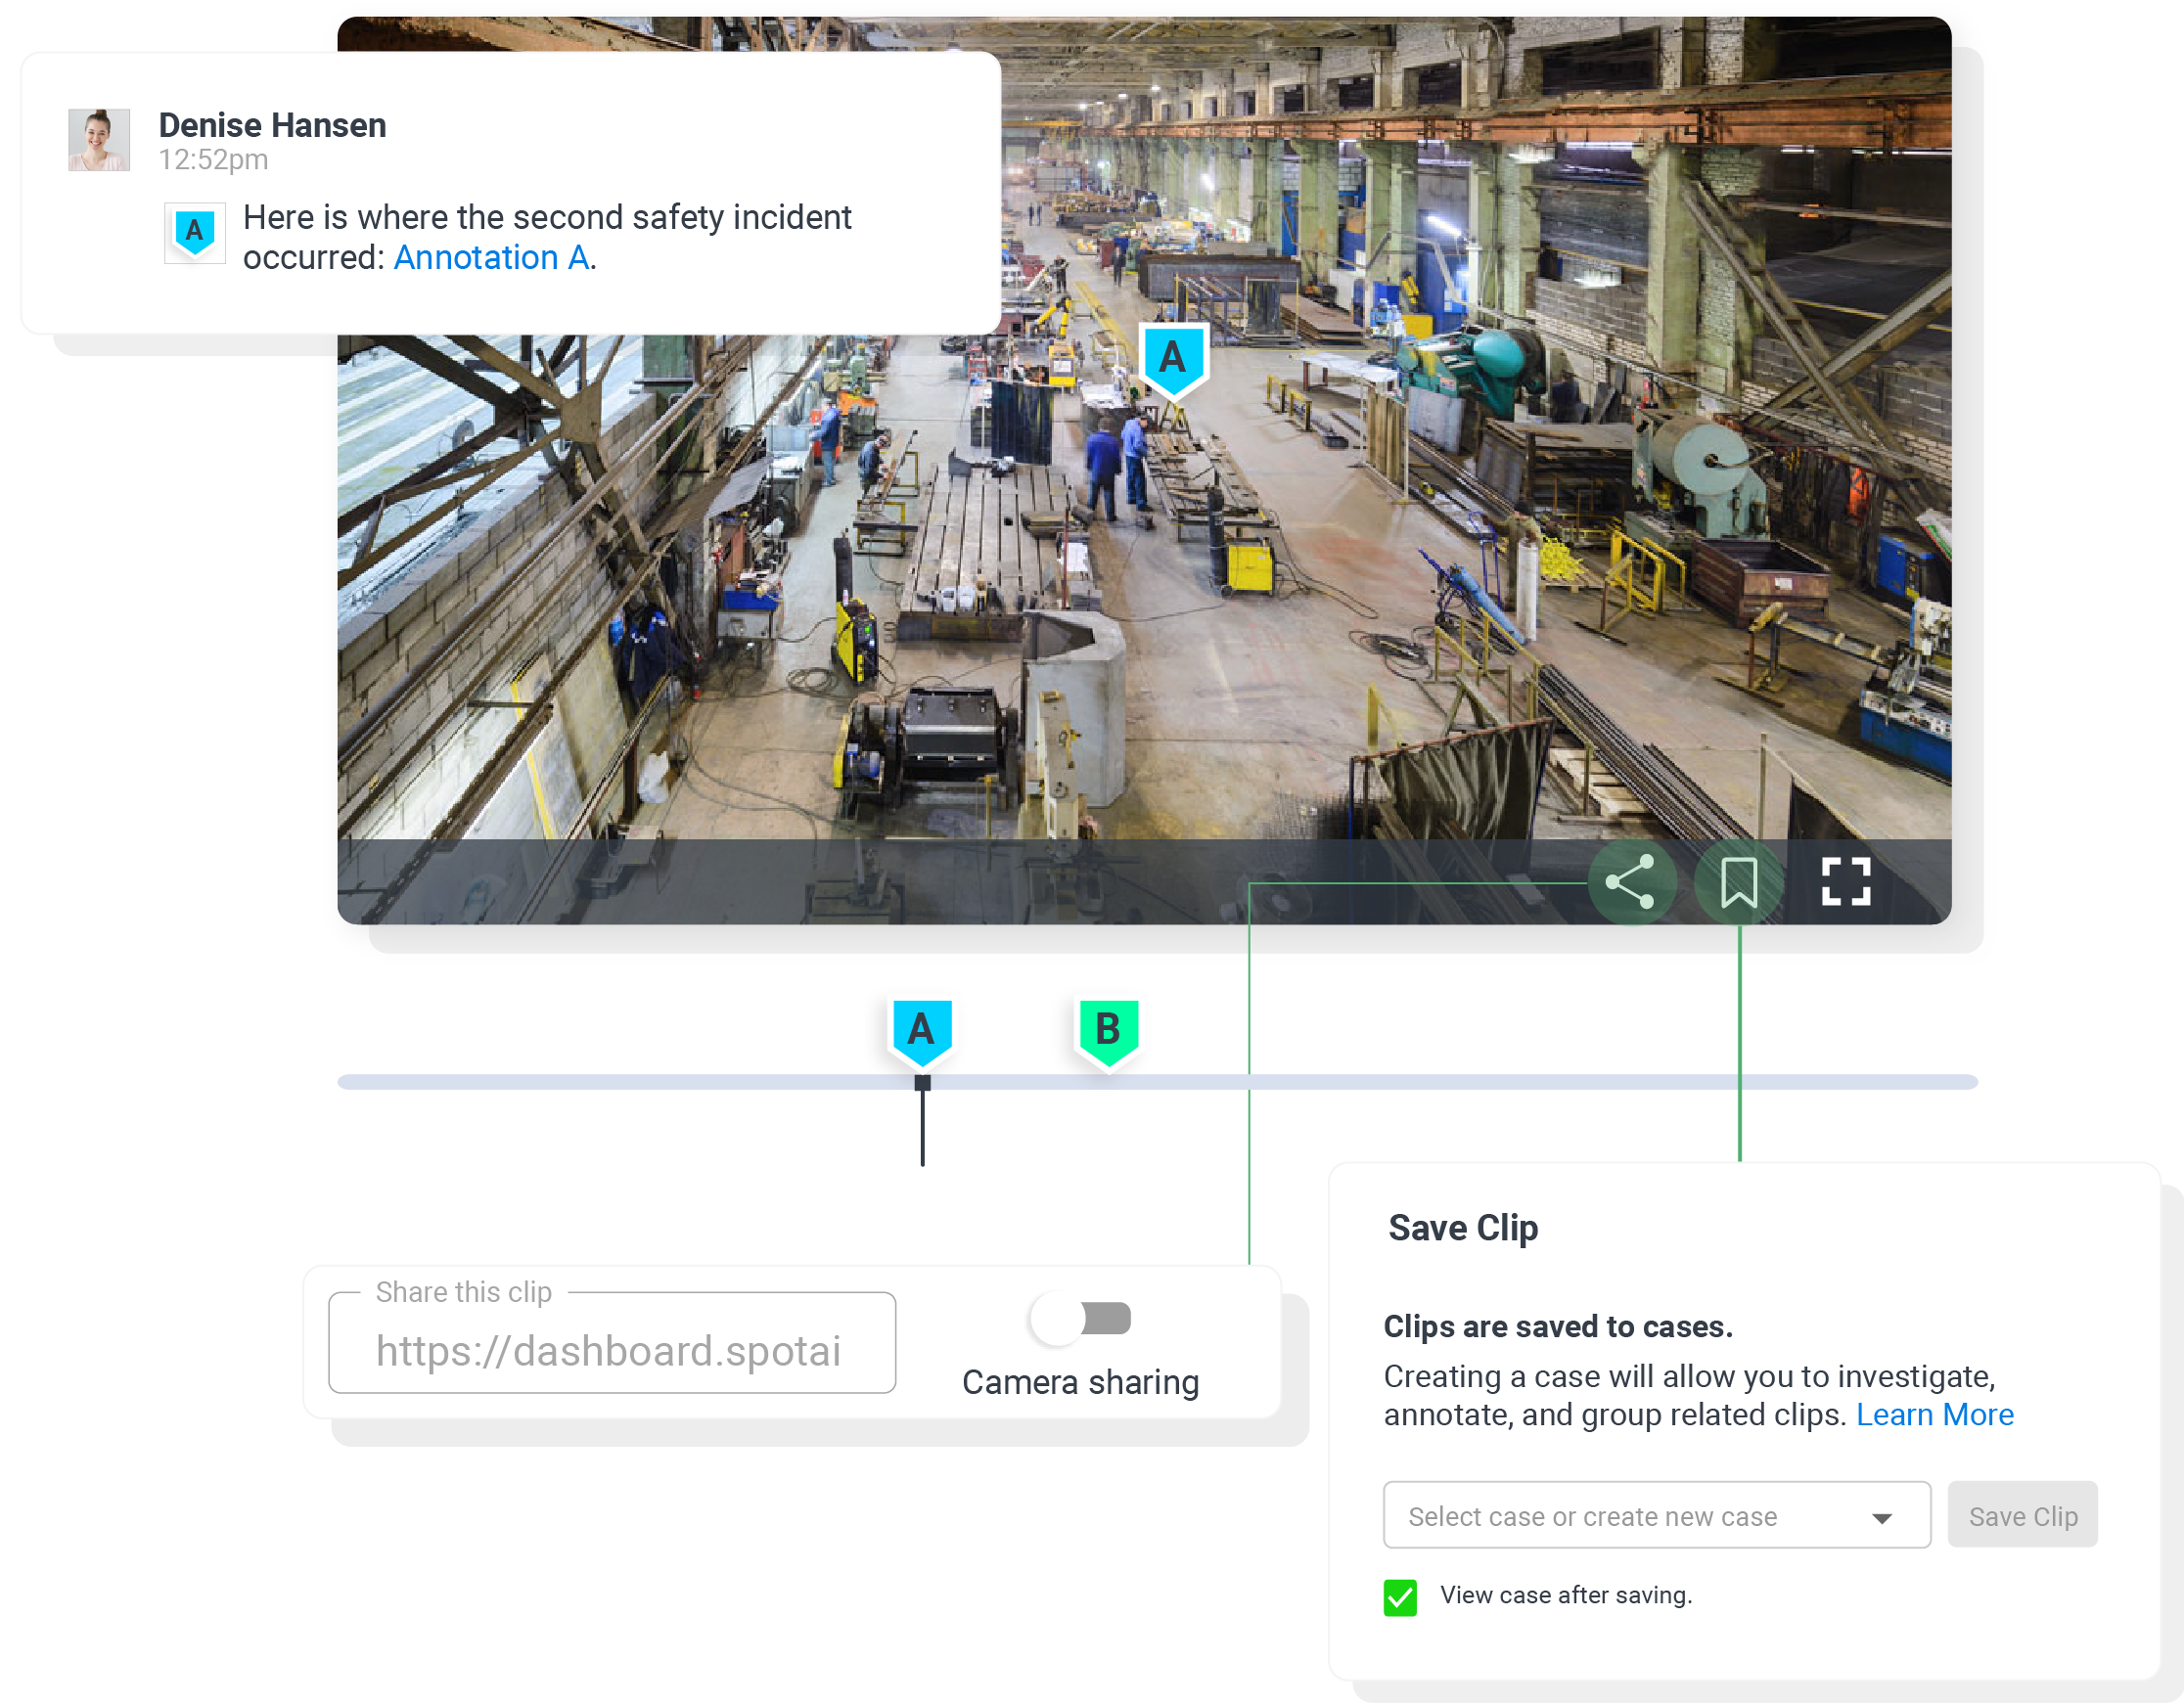 cloud video surveillance of safety incident clip with save and share UI modals